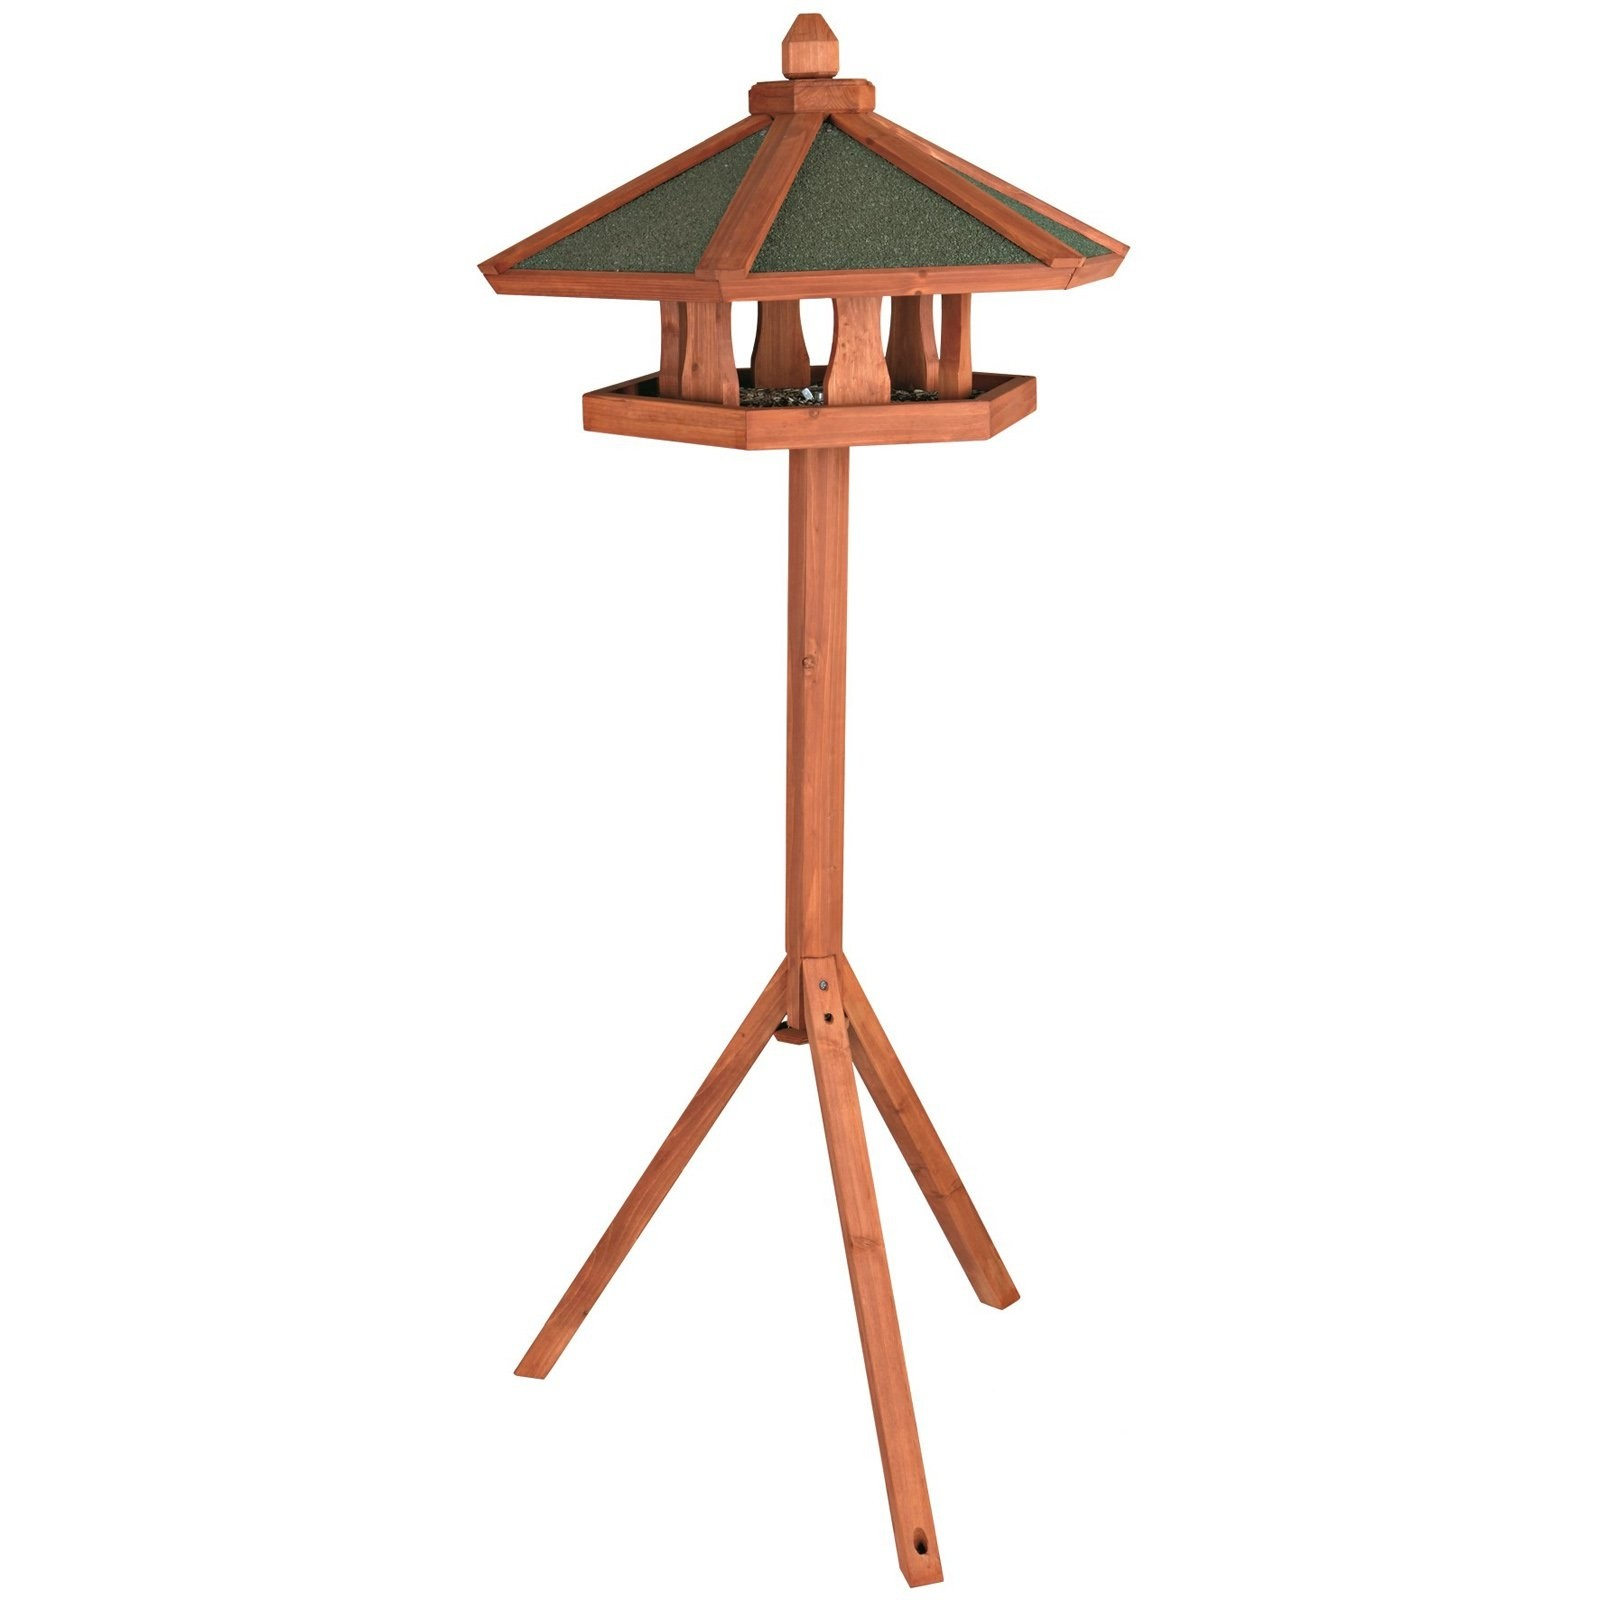 Wooden Gazebo Bird Feeder